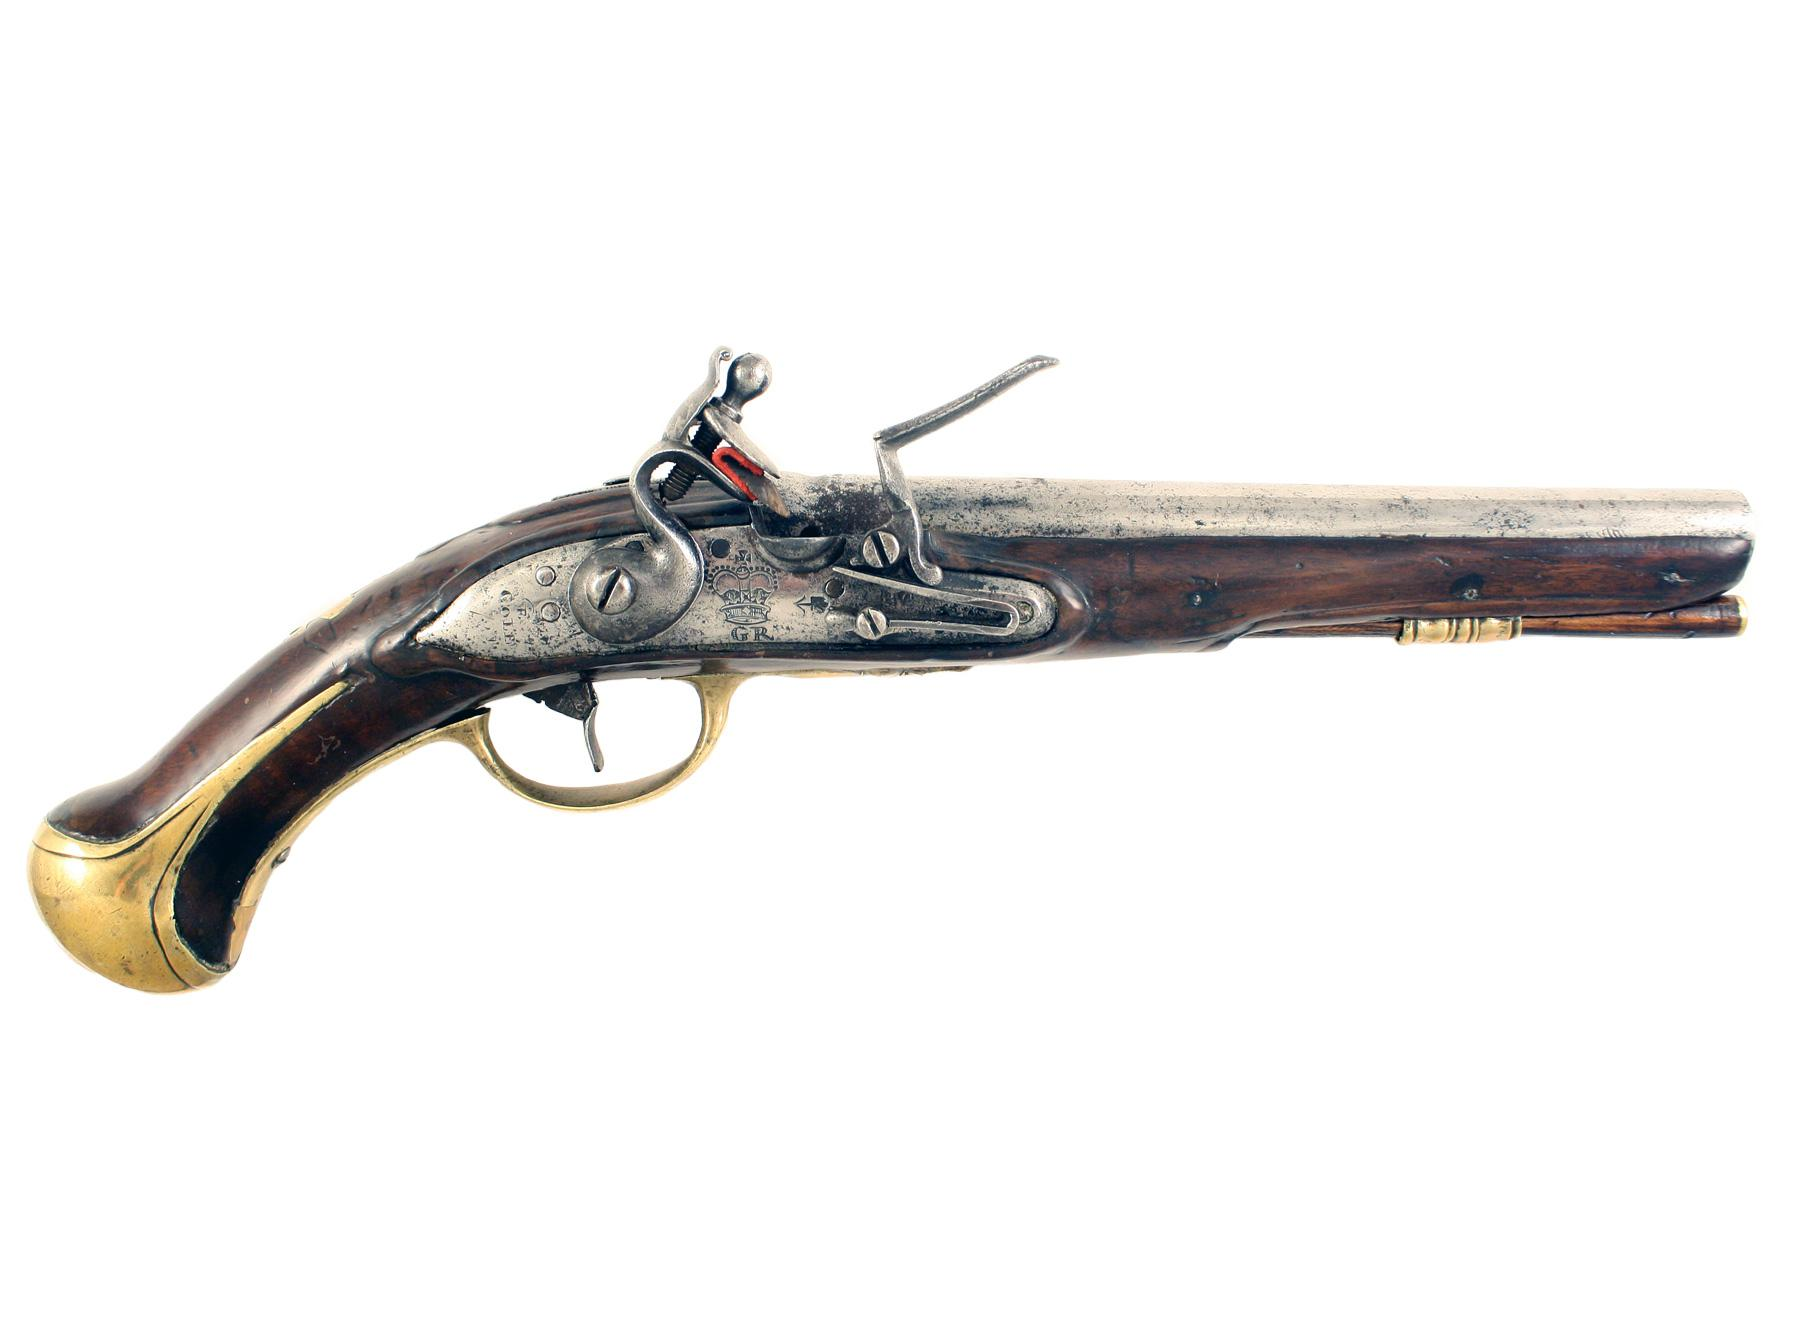 A 1731 Ordnance Pistol by Cole